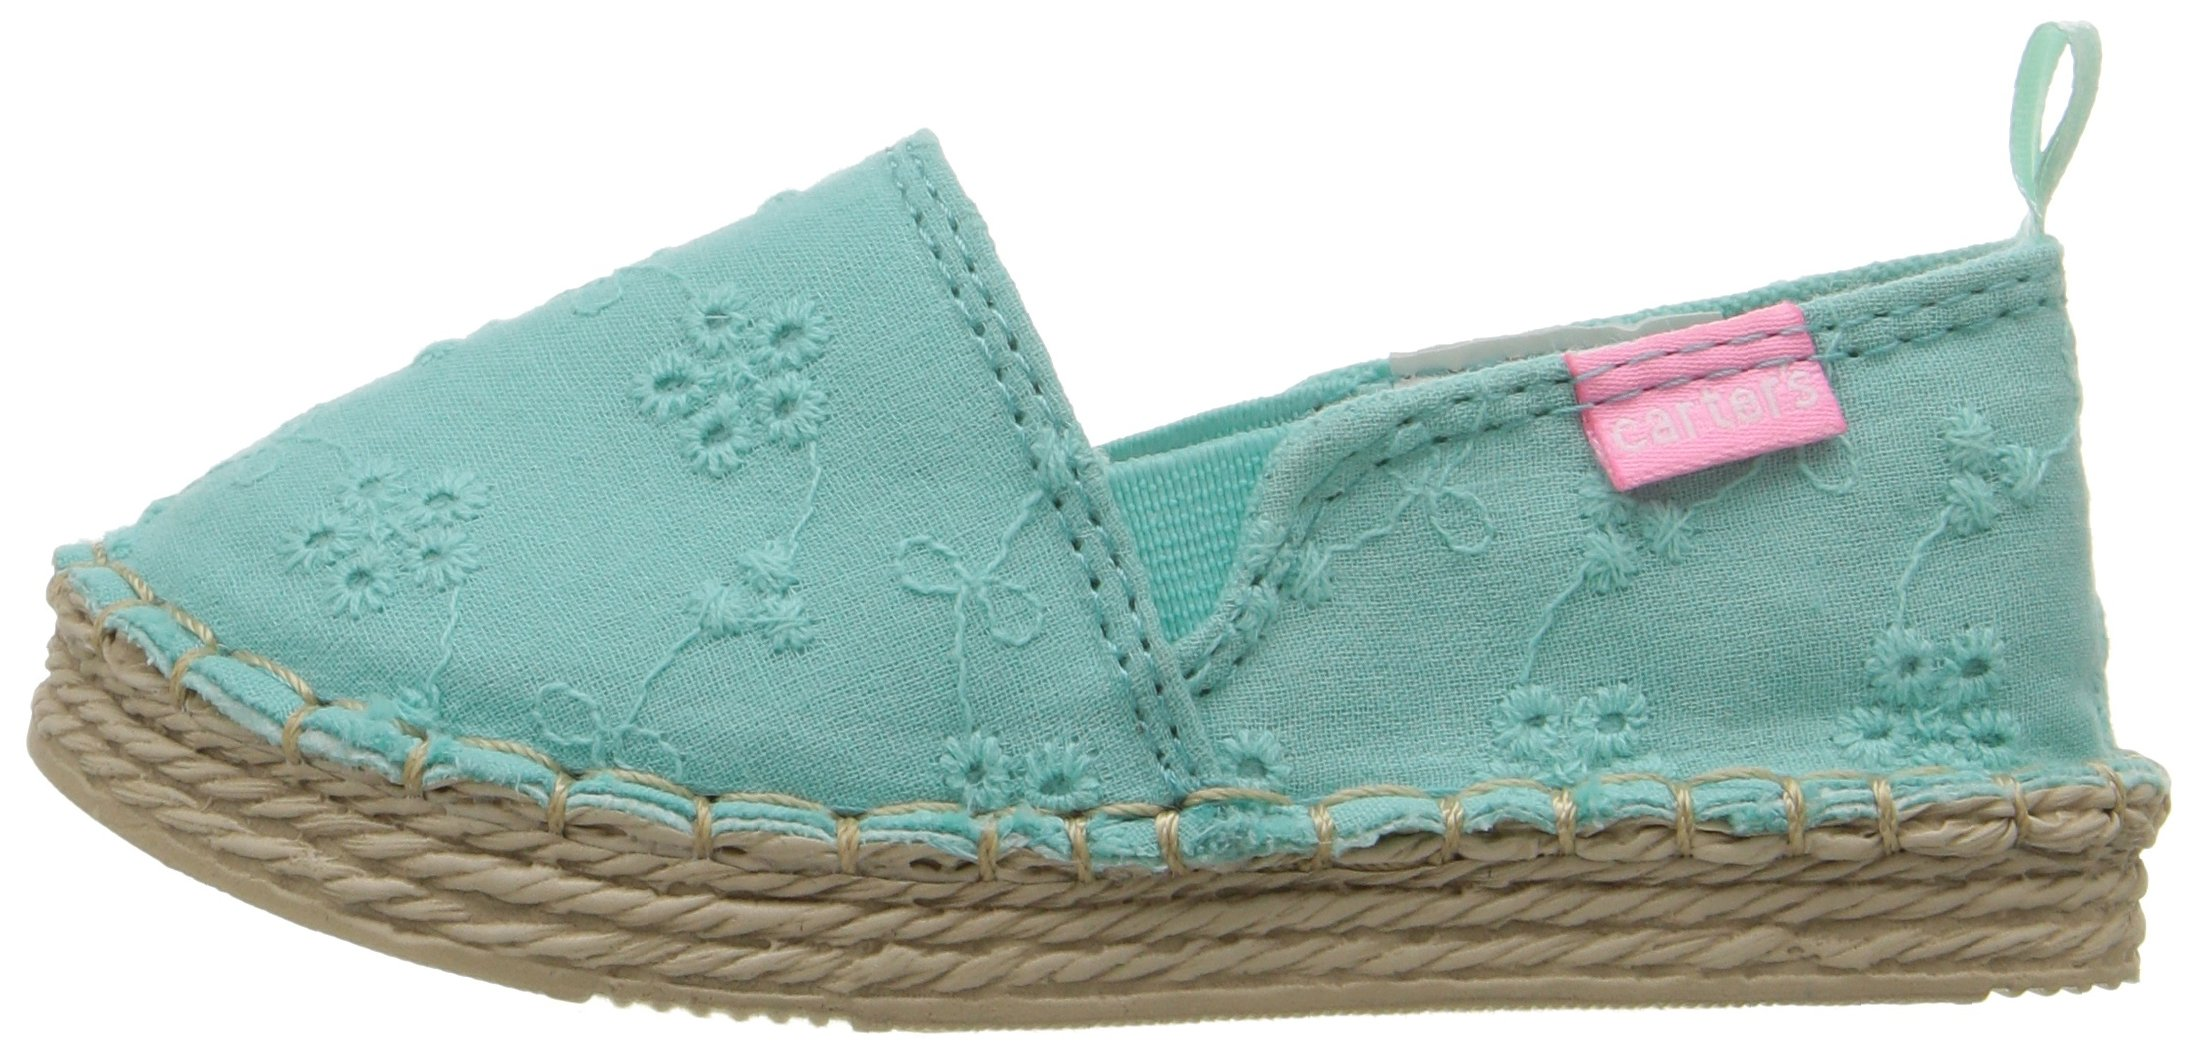 Carter's Astrid Girl's Espadrille Slip-On, Turquoise, 10 M US Toddler by Carter's (Image #5)